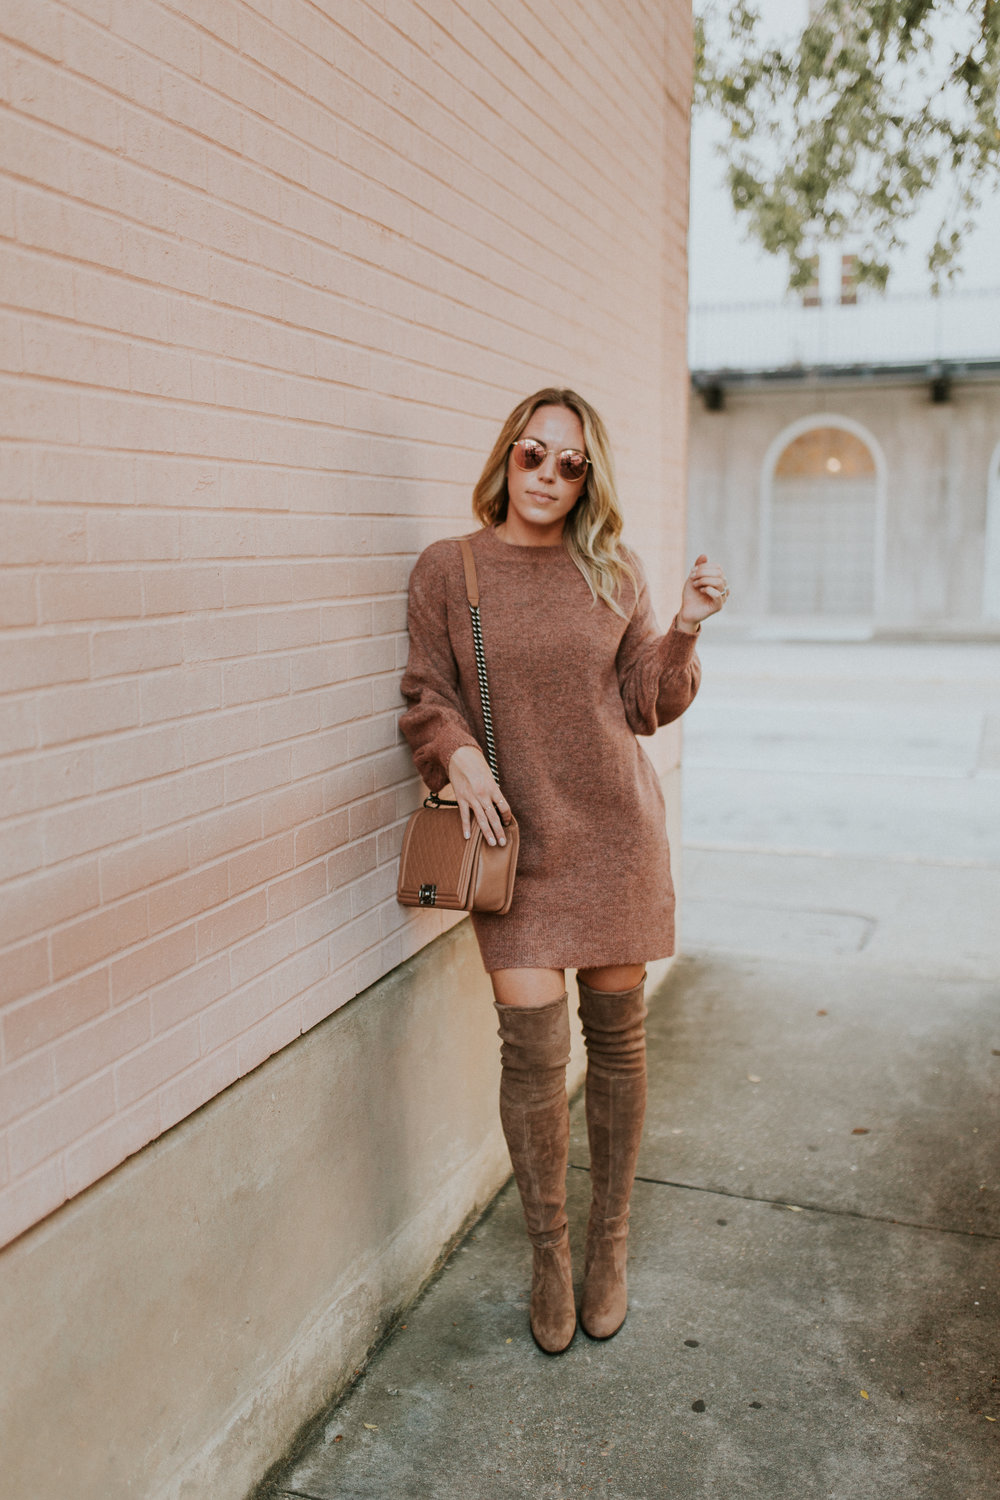 Blogger Gracefully Taylored in Topshop Sweater Dress and Stuart Weitzman Boots(11).jpg